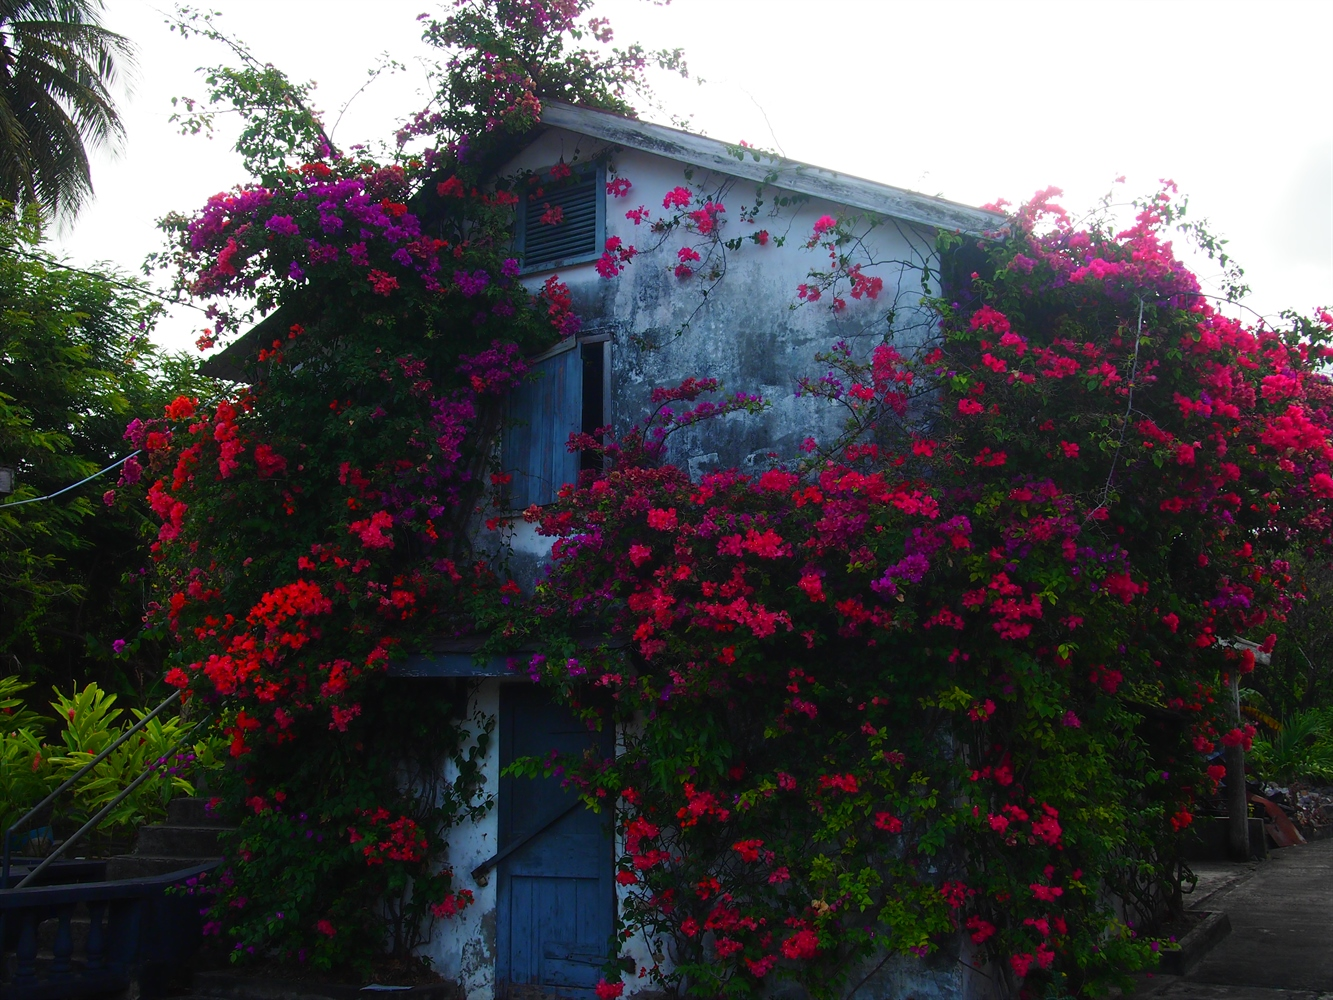 House surrounded by flowers